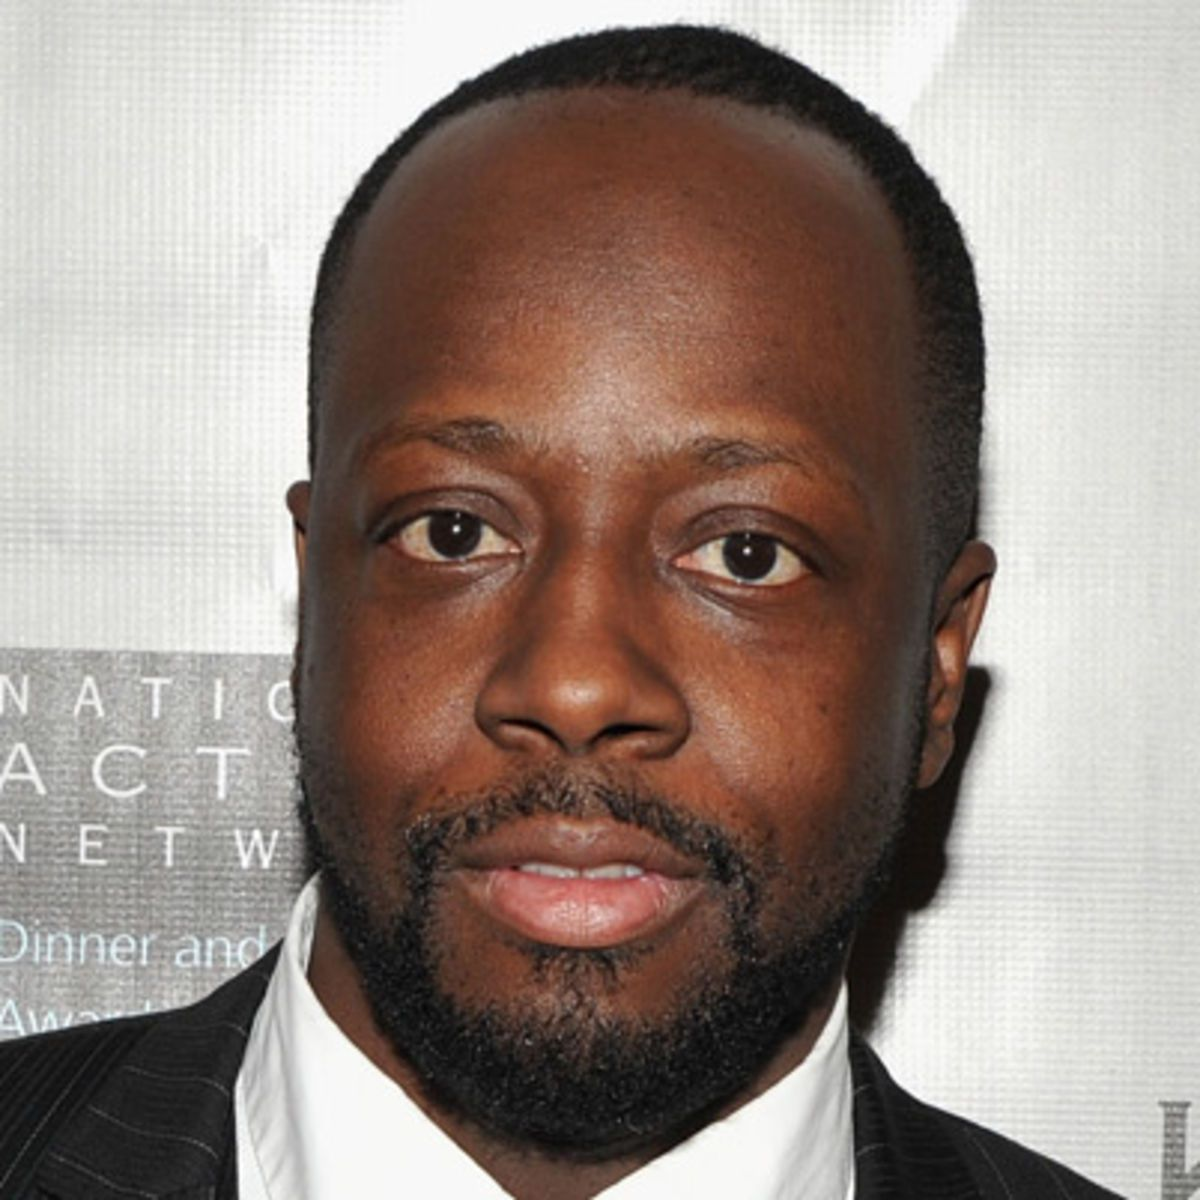 Oct 17, 1969 Wyclef Jean born in Croix-des-Bouquets, Haiti